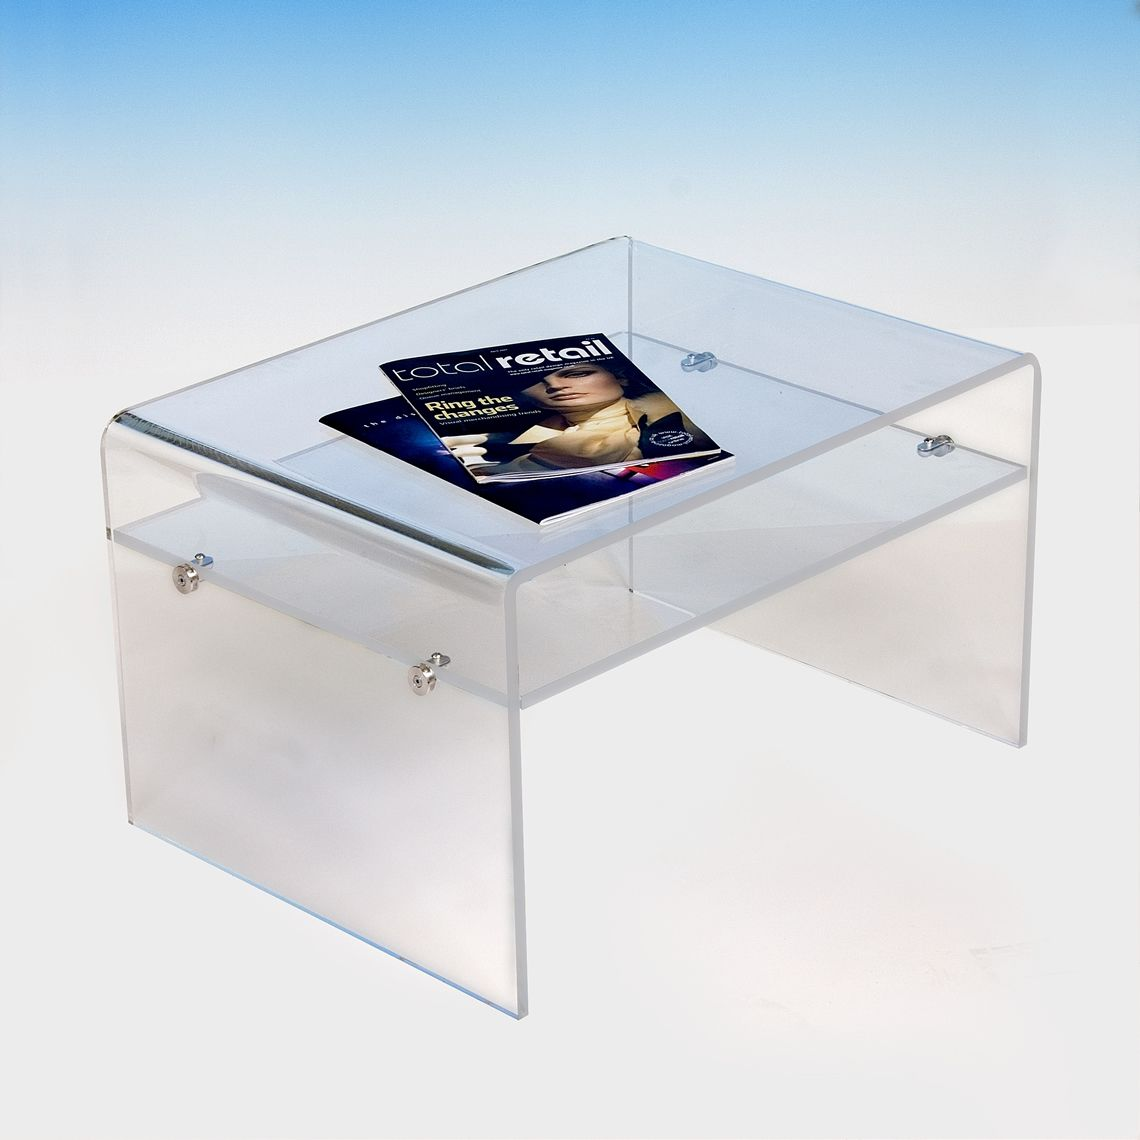 Acrylic coffee table with shelf tv stand acrylic design acrylic coffee table with shelf tv stand geotapseo Gallery